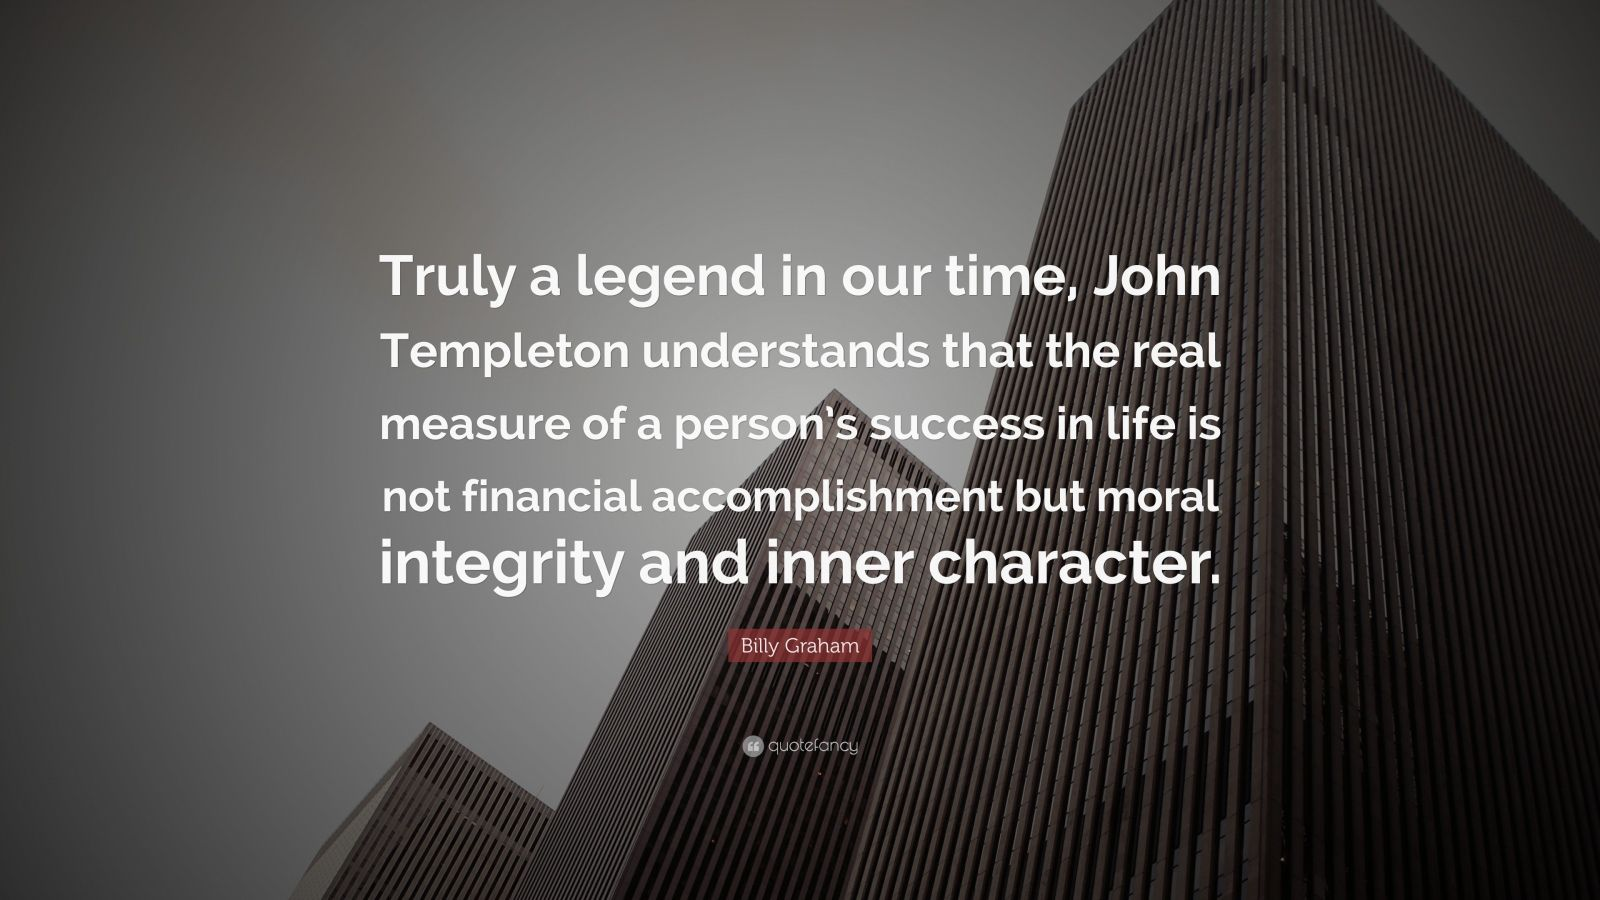 """Billy Graham Quote: """"Truly a legend in our time, John Templeton understands that the real measure of a person's success in life is not financial accomplishment but moral integrity and inner character."""""""